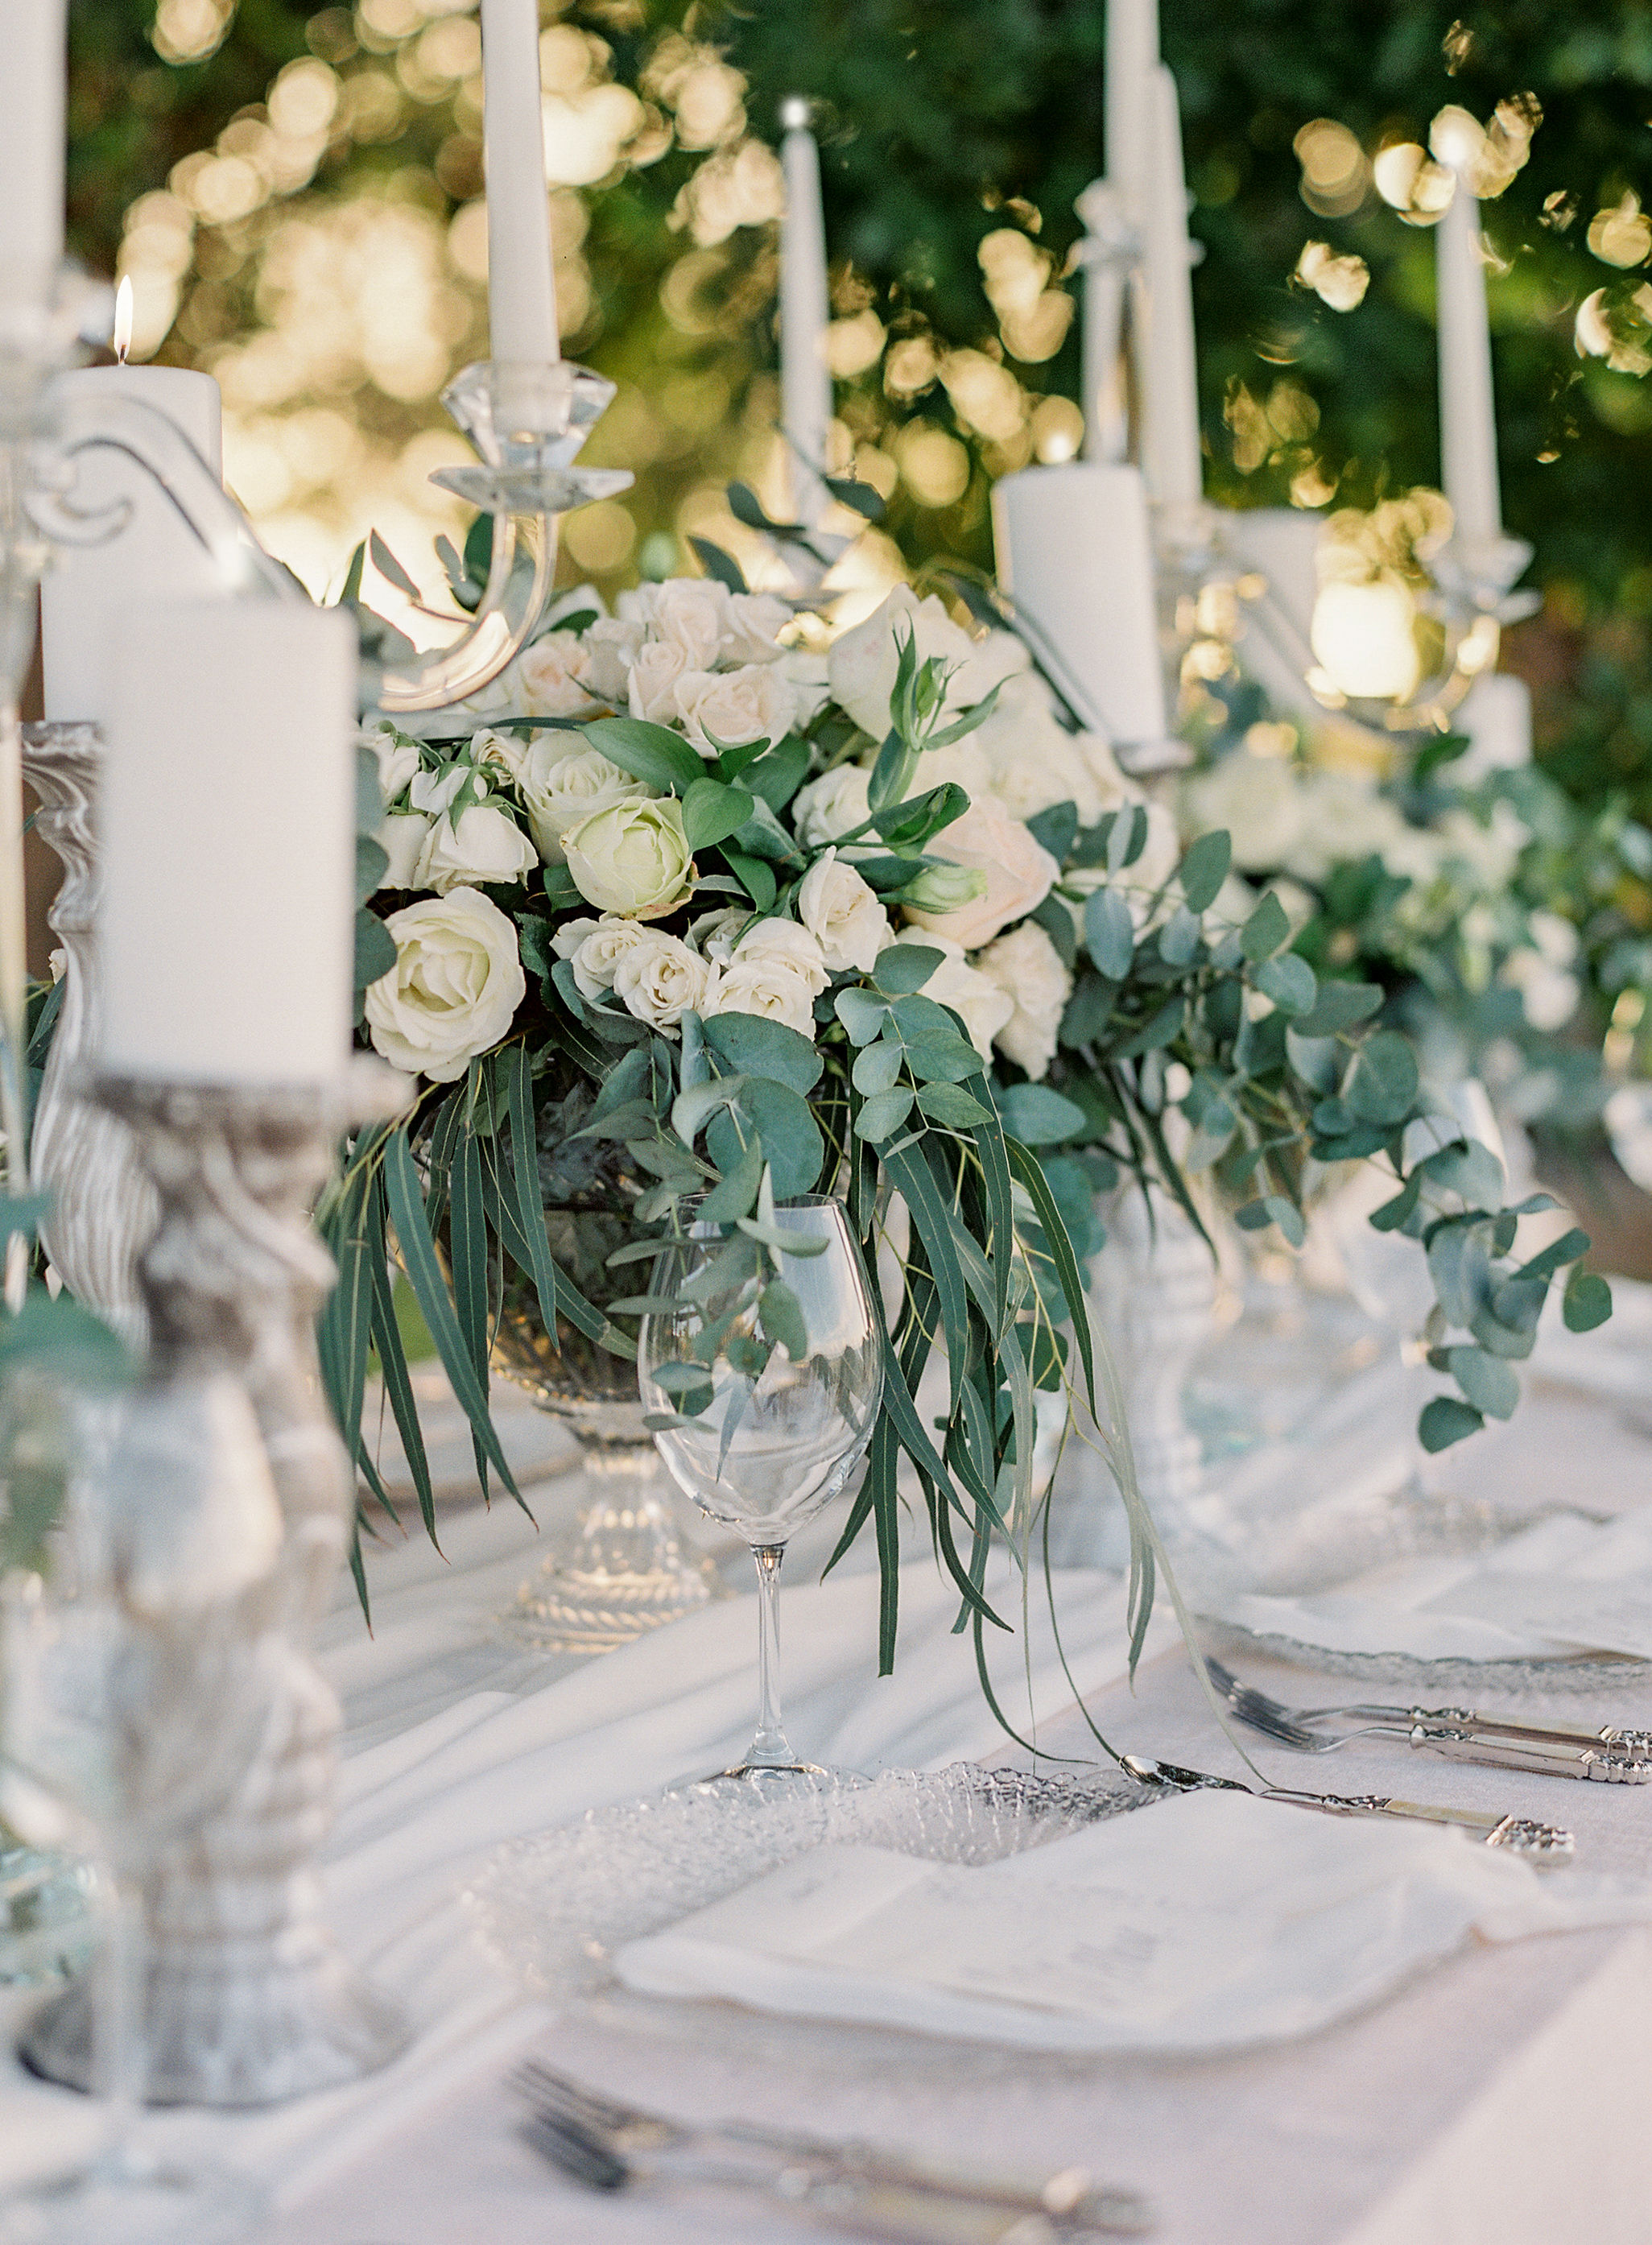 jessica ryan wedding tables with flowers and candles